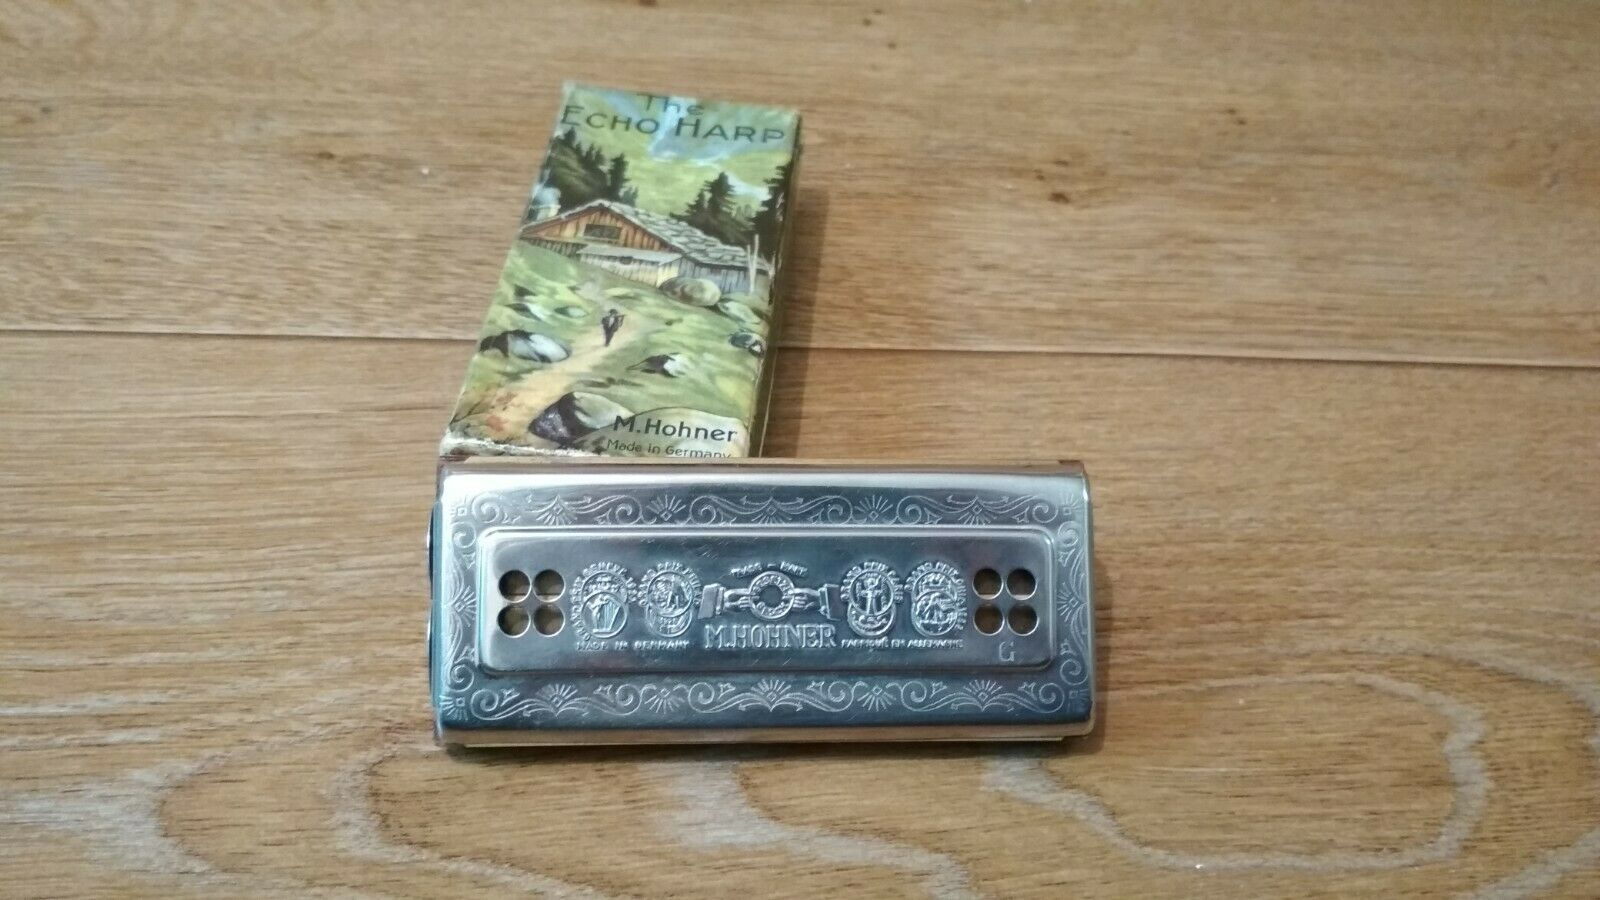 Old double-sided harmonica Echo Harp Hohner Germany